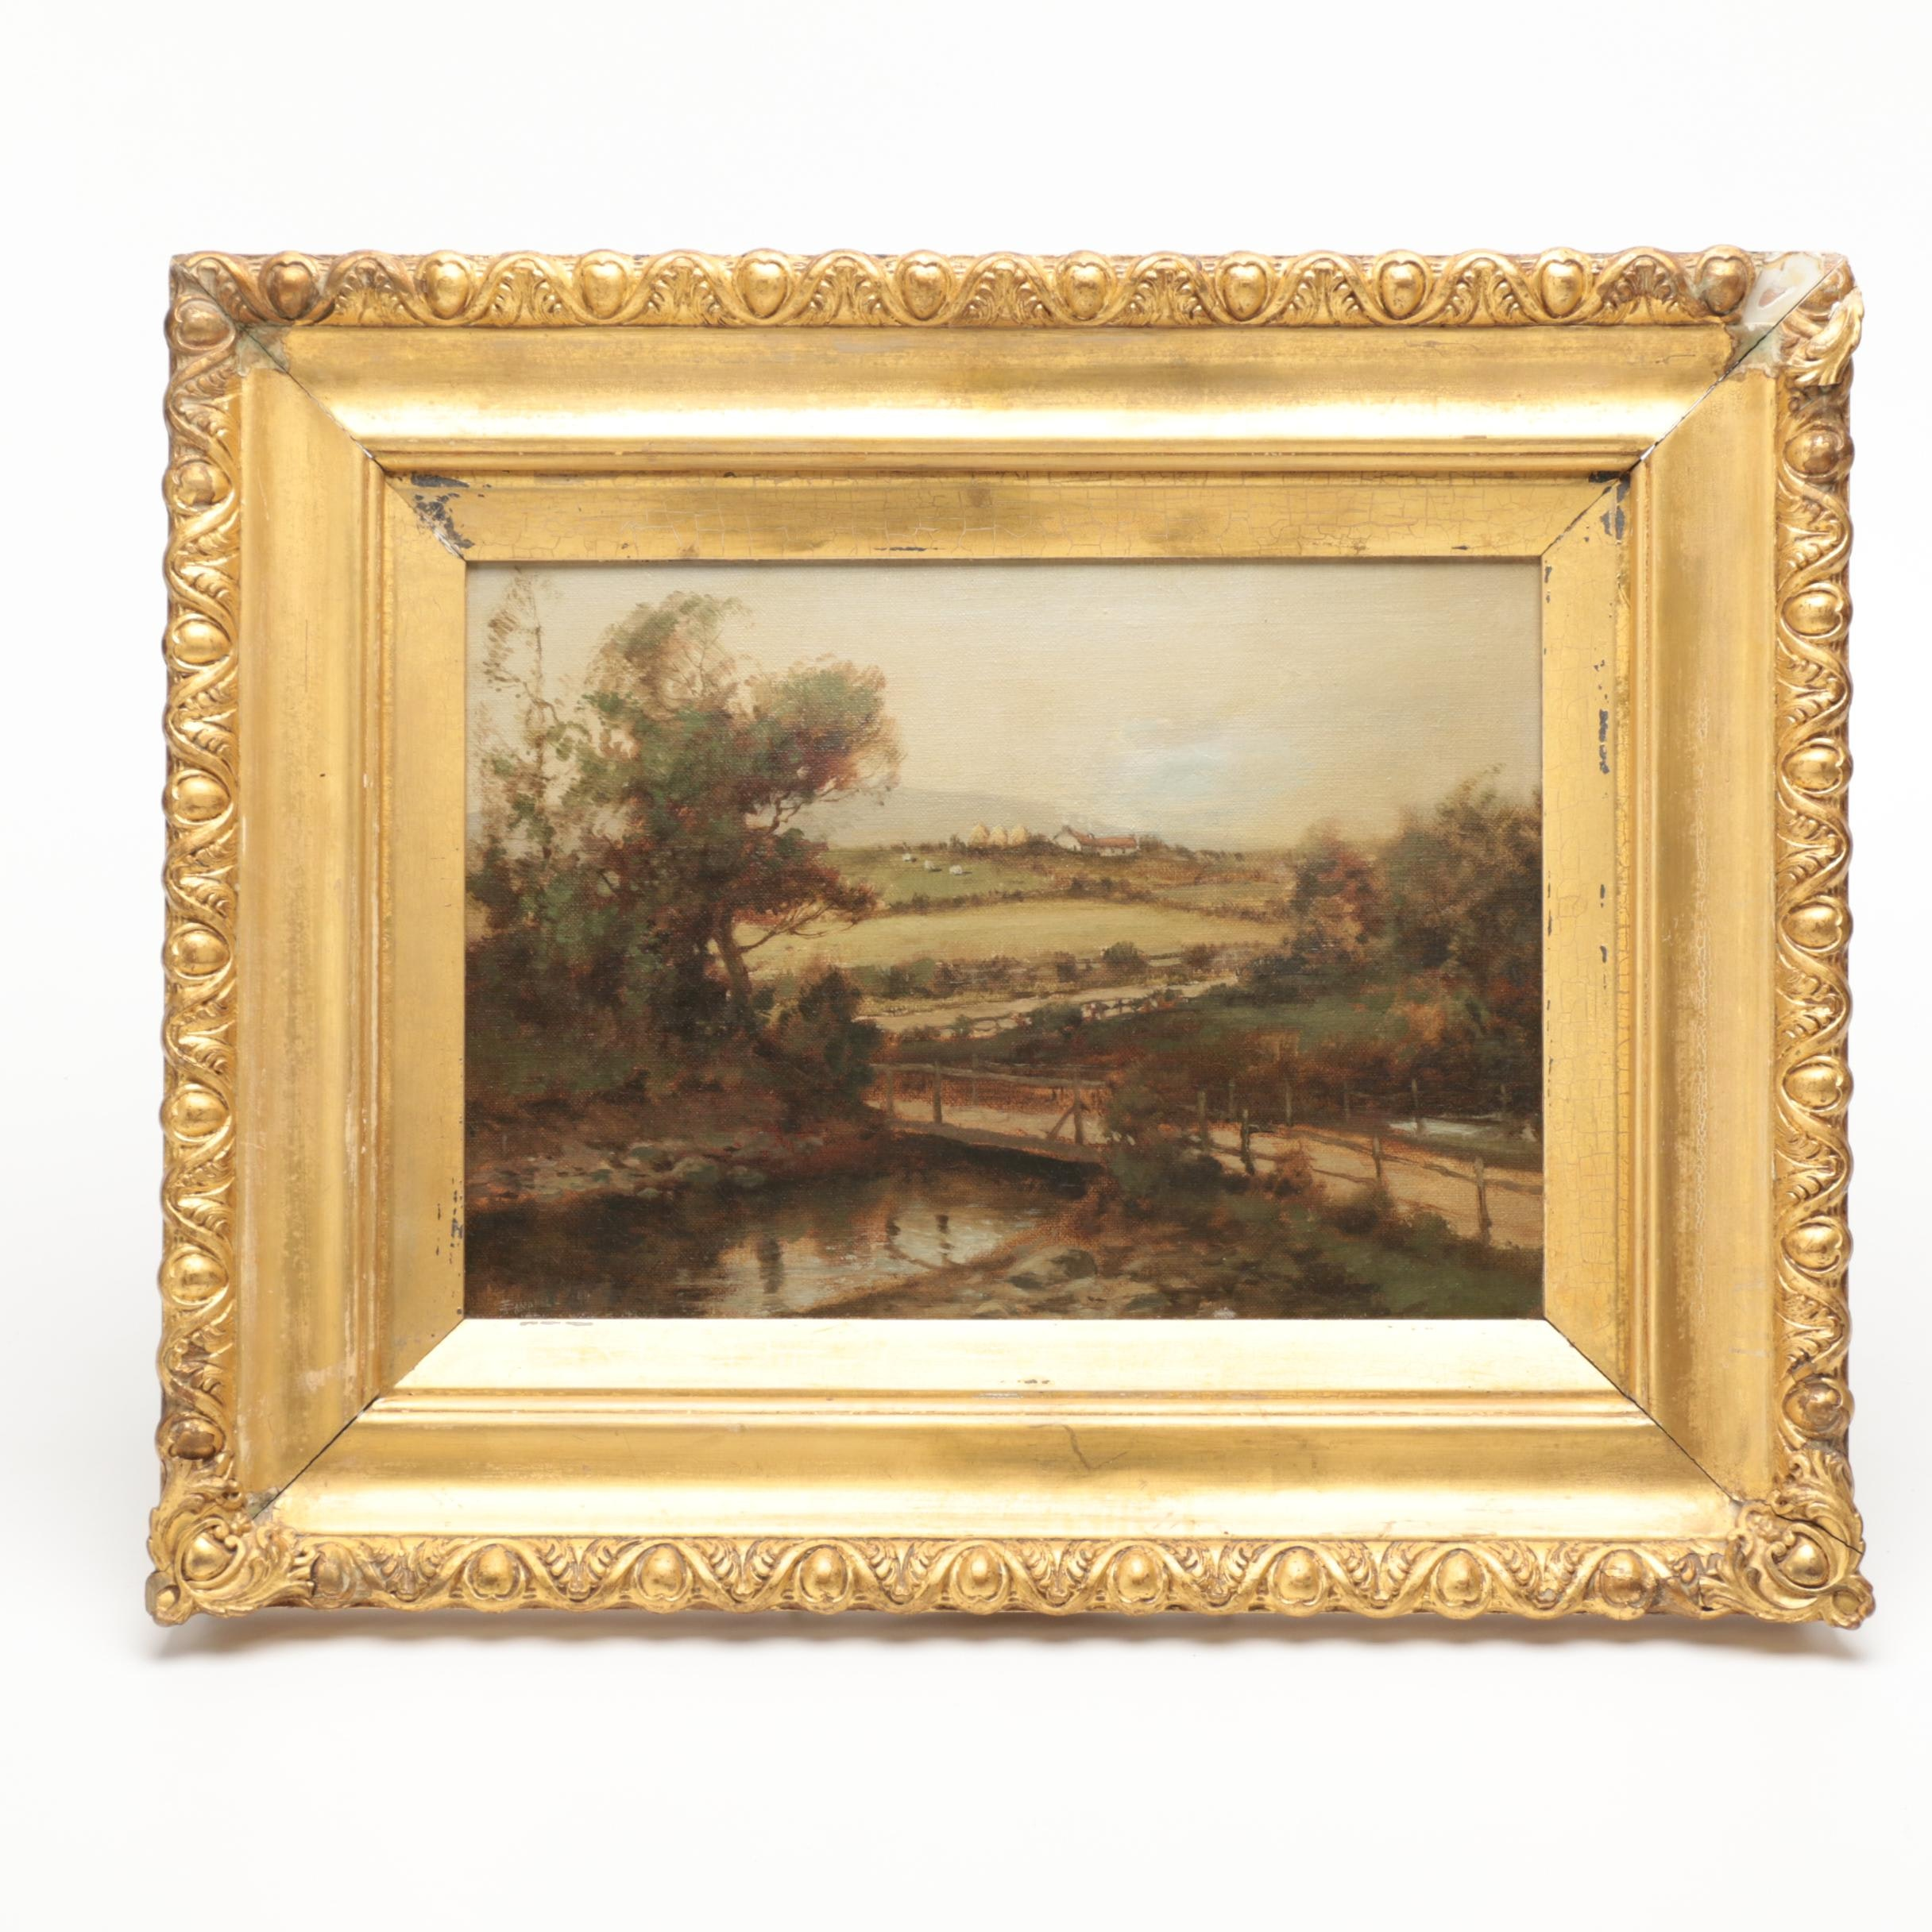 Antique Signed Oil Landscape Painting on Canvas of a River